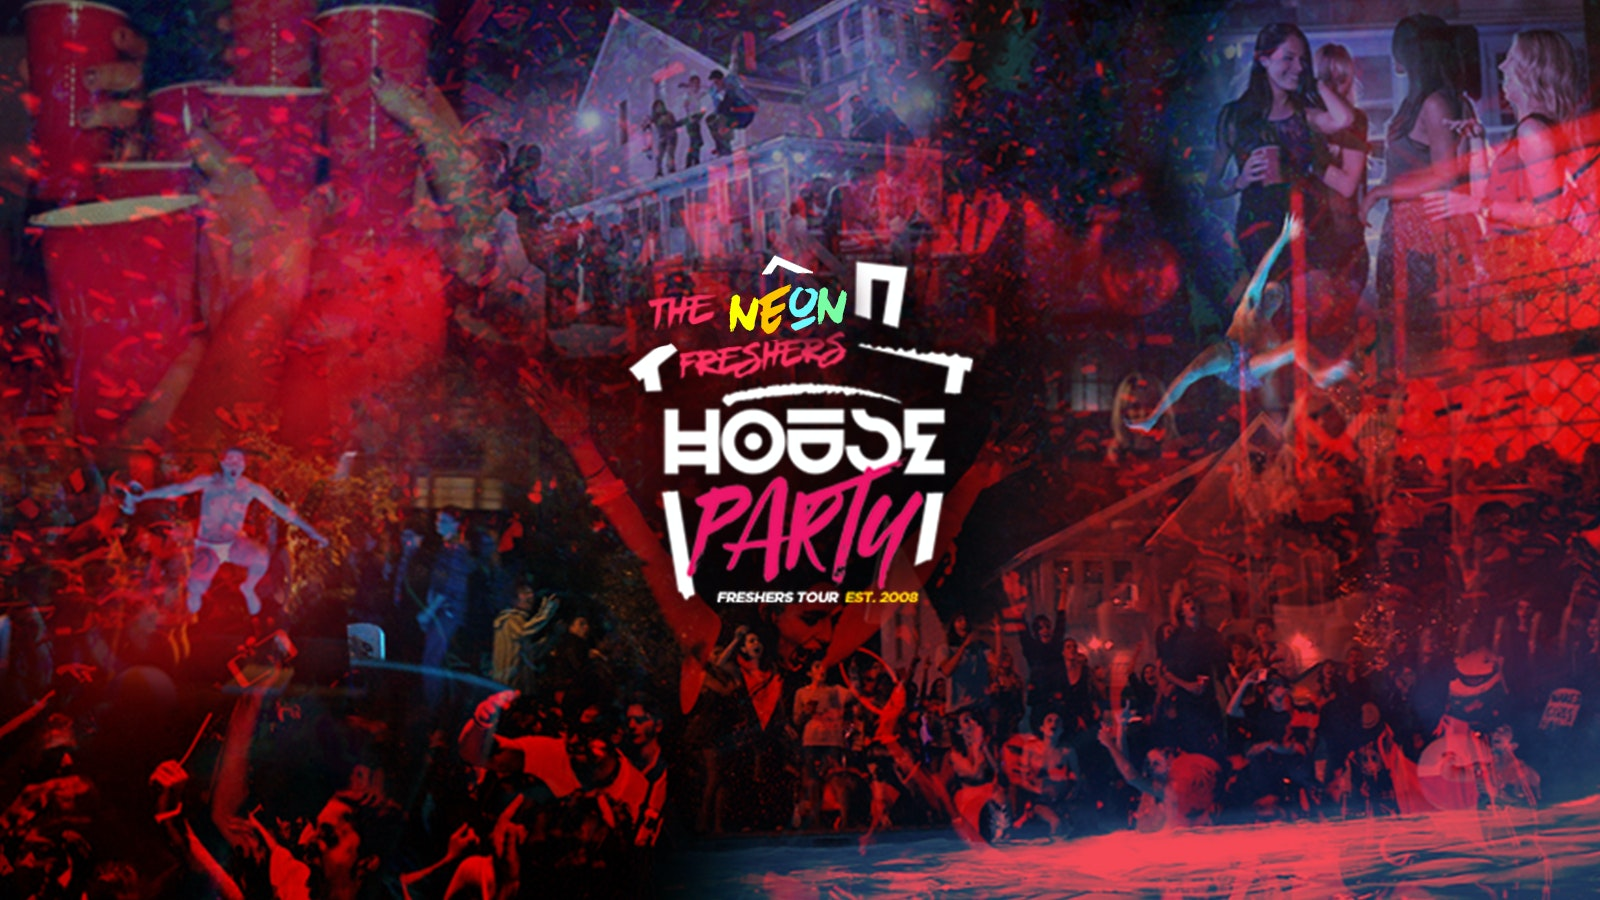 Neon Freshers House Party // Chester Freshers 2020